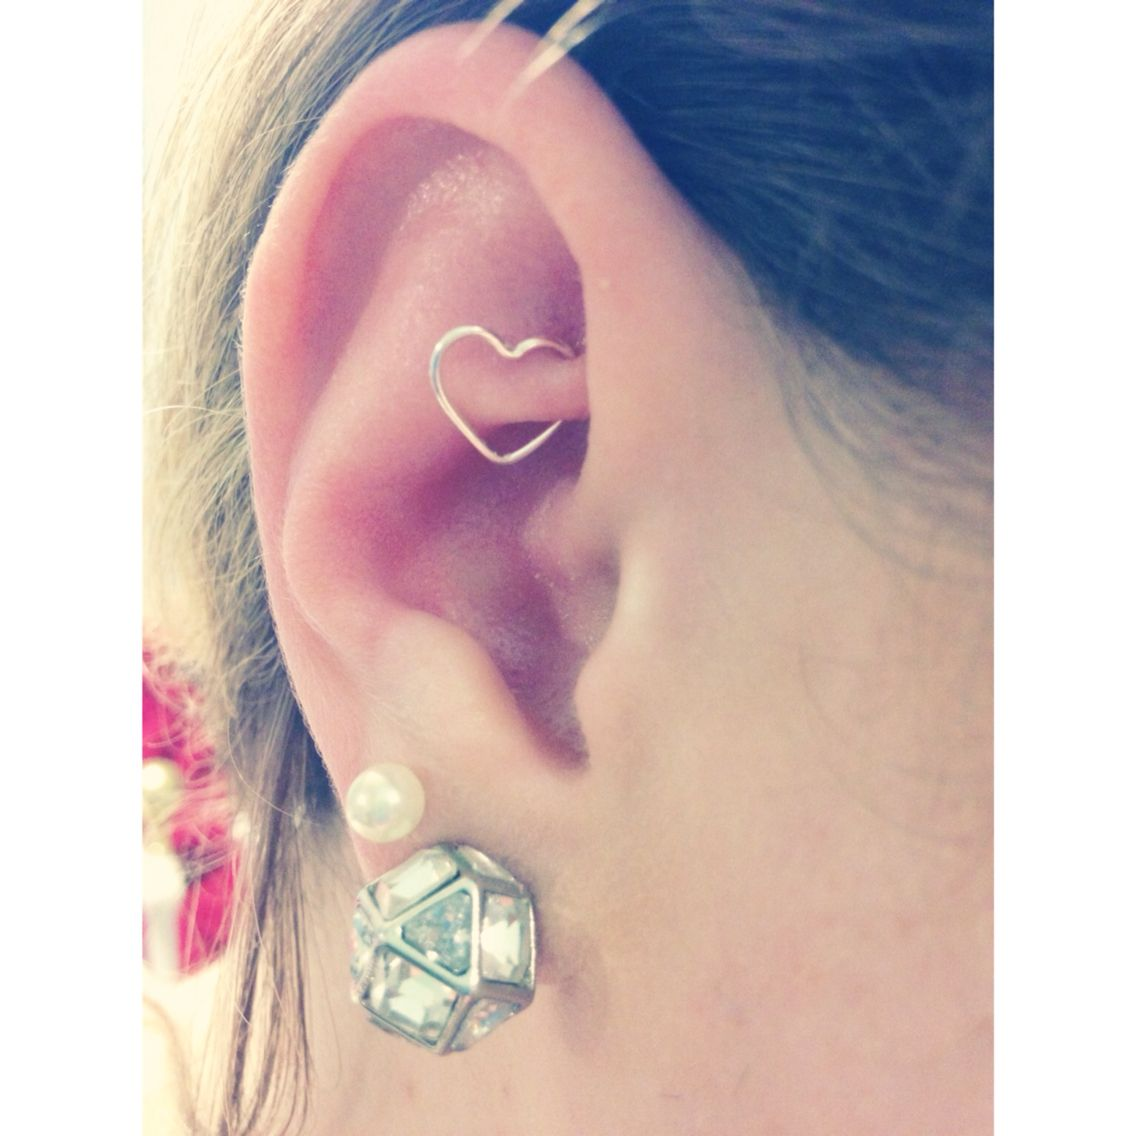 Earring piercing ideas  Rook heart piercing At Clairus for   Piercings  Pinterest